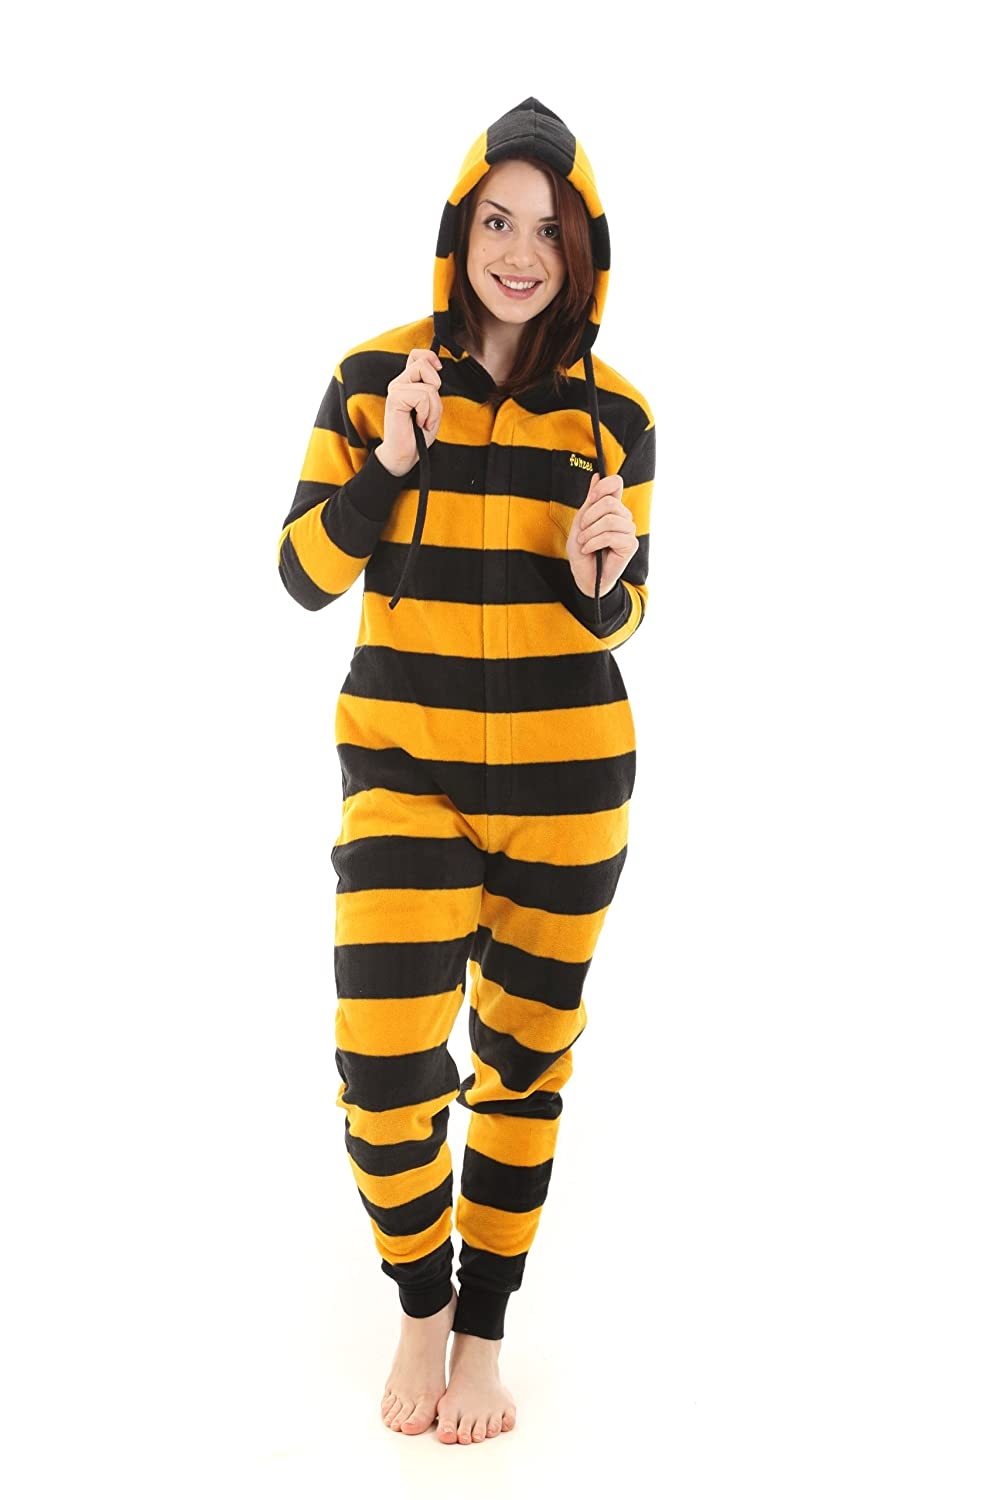 funzee Bumble Onesie, Sleepsuit Babygrow or Romper. Allinone Pyjamas or Jumpsuit. Sizes XS-XXL (Size by height)